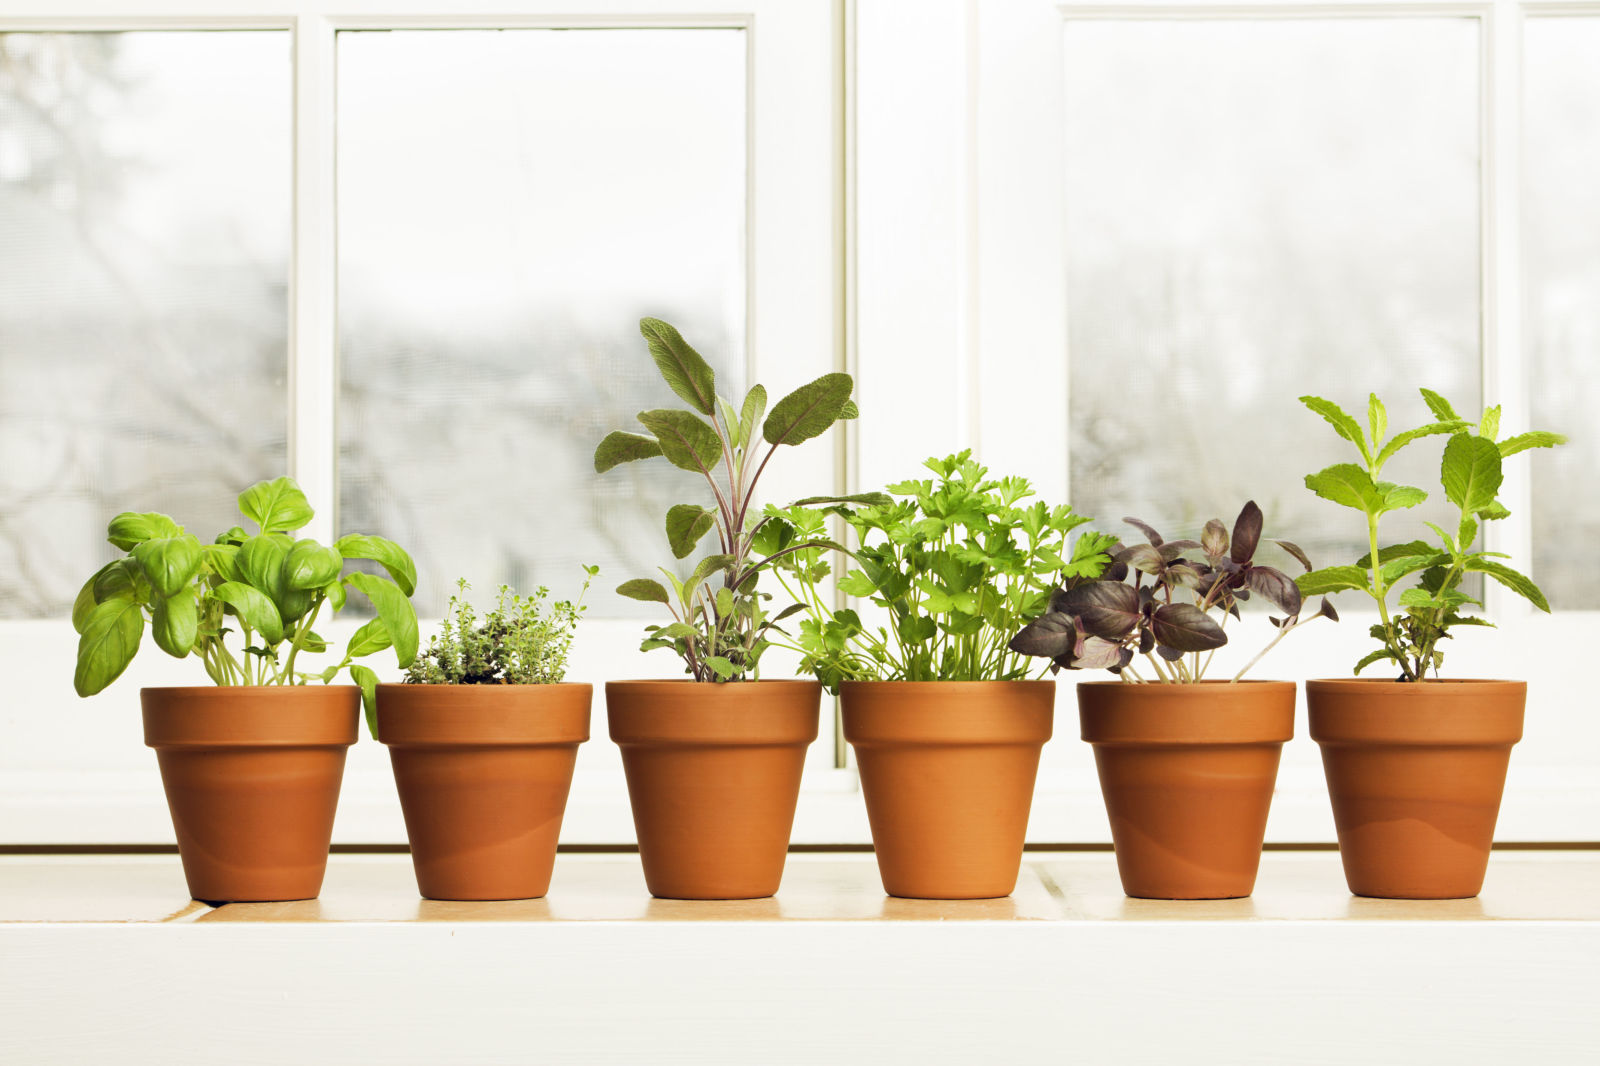 How to grow herbs and spices indoors clickhowto for What plants can i grow indoors